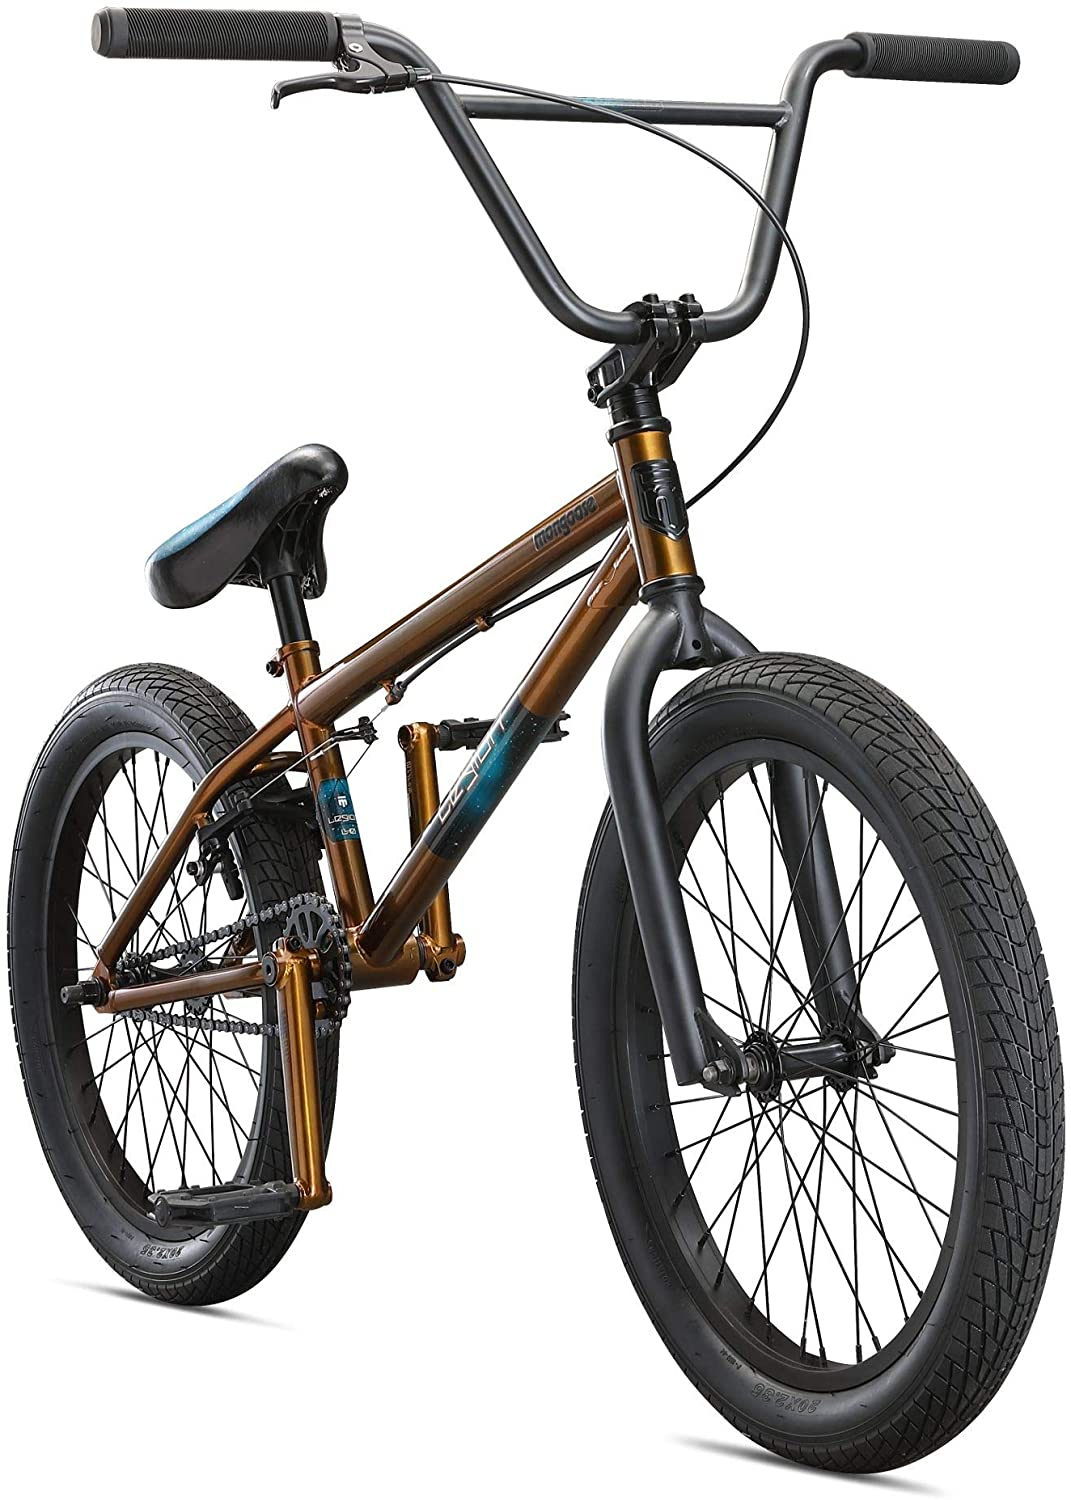 Mongoose Legion Freestyle BMX Bike Line for Kids, Youth and Beginner-Level to Advanced Adult Riders,16-20-Inch Wheels, Steel Frame, Multiple Colors, Models